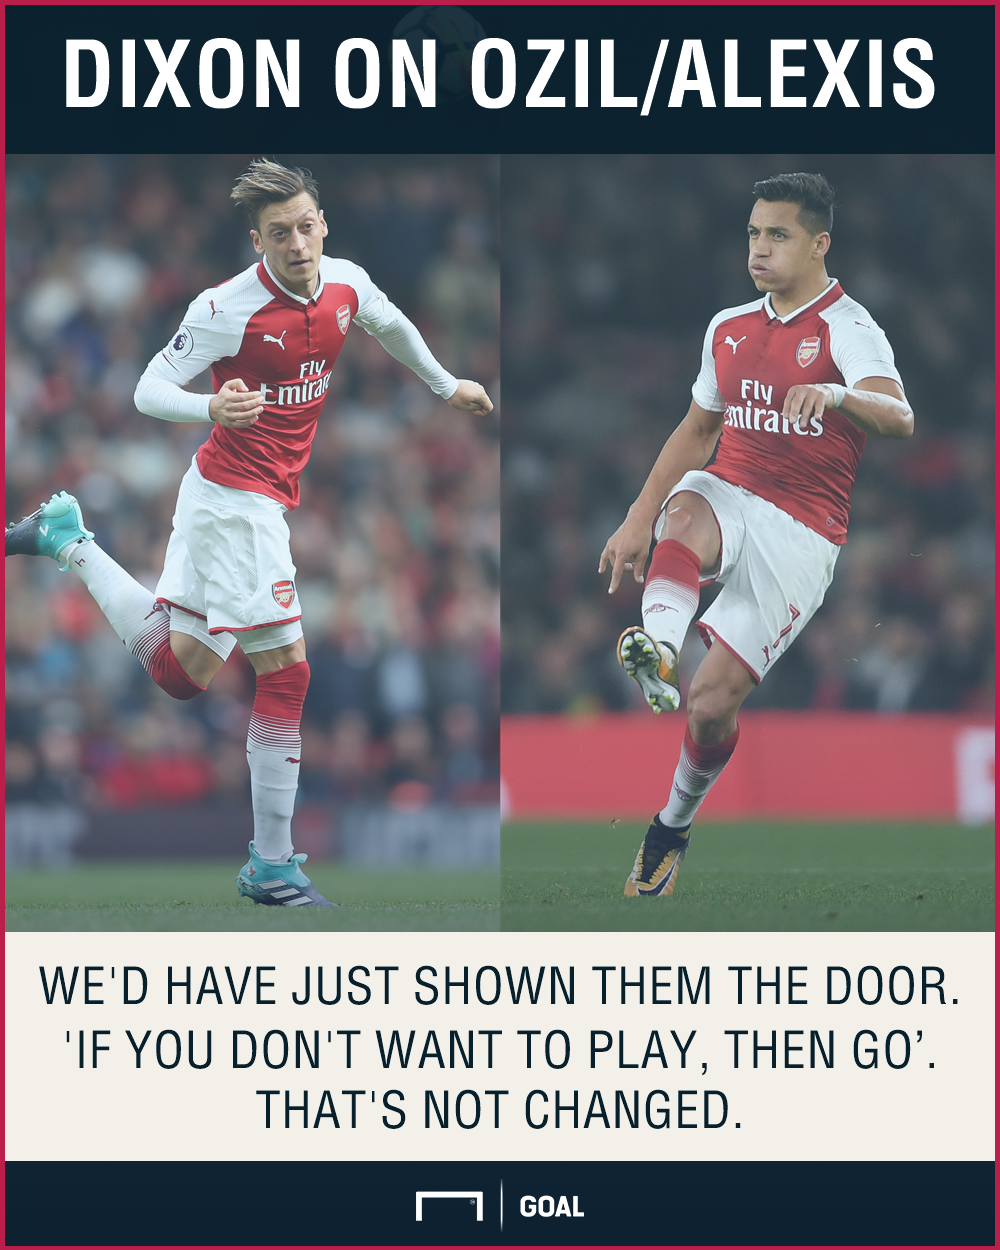 Have the Arsenal players had enough of Alexis and Ozil?